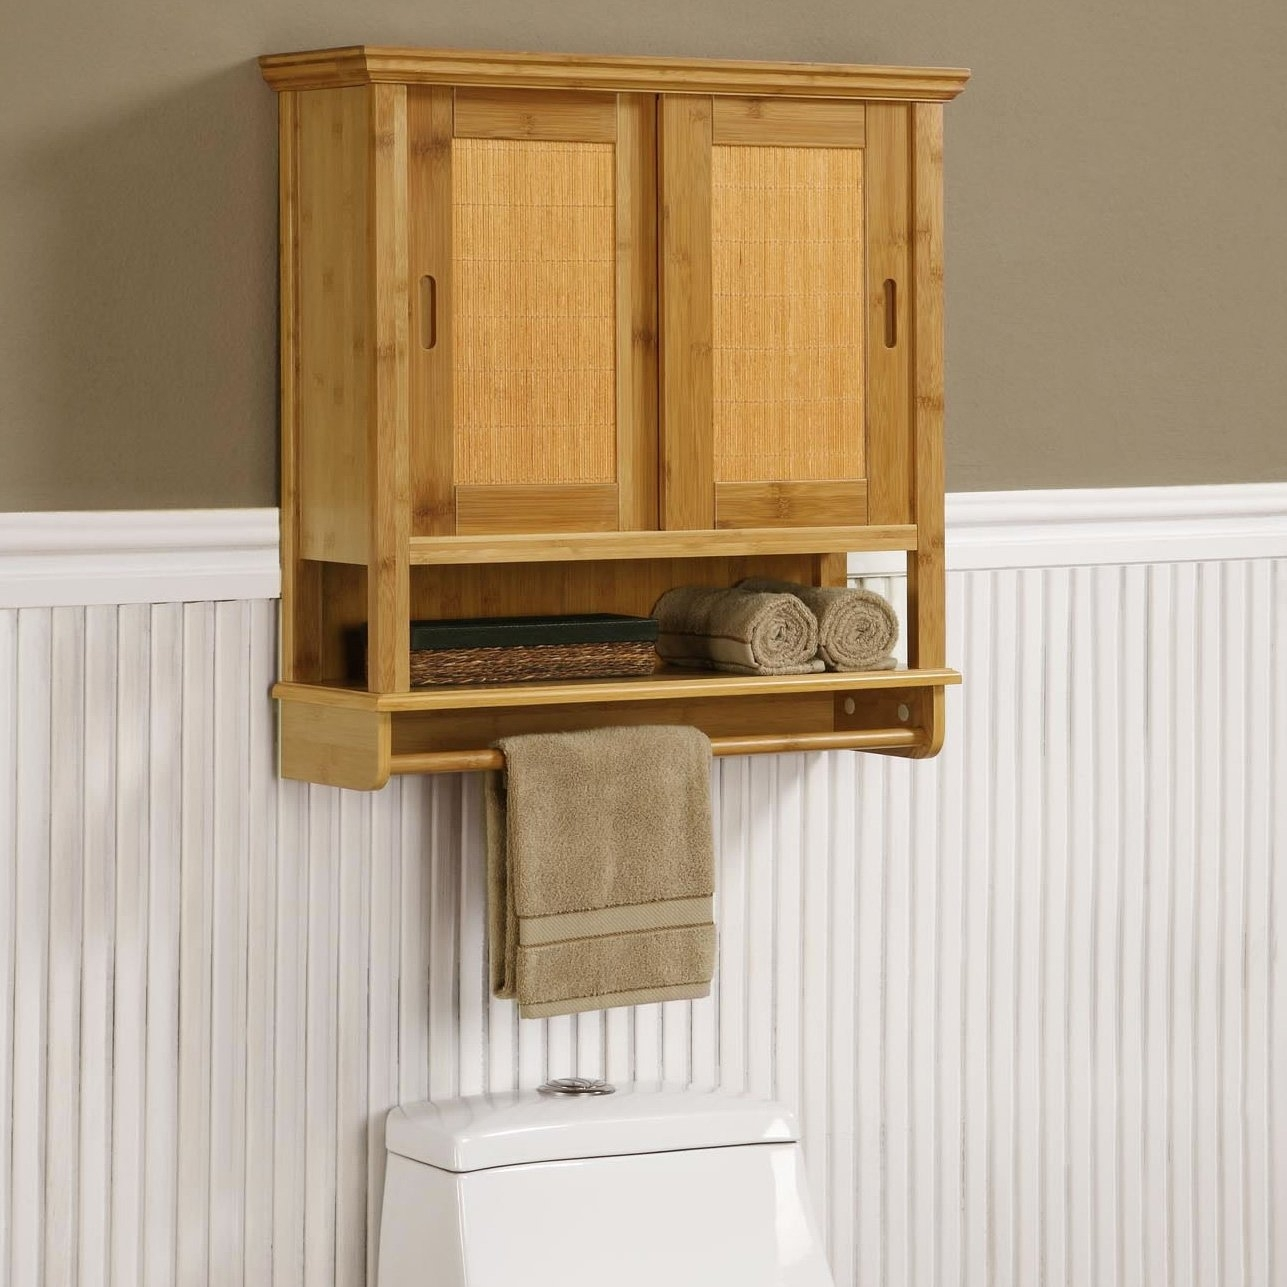 Storage Cabinets For Bathroom Wall